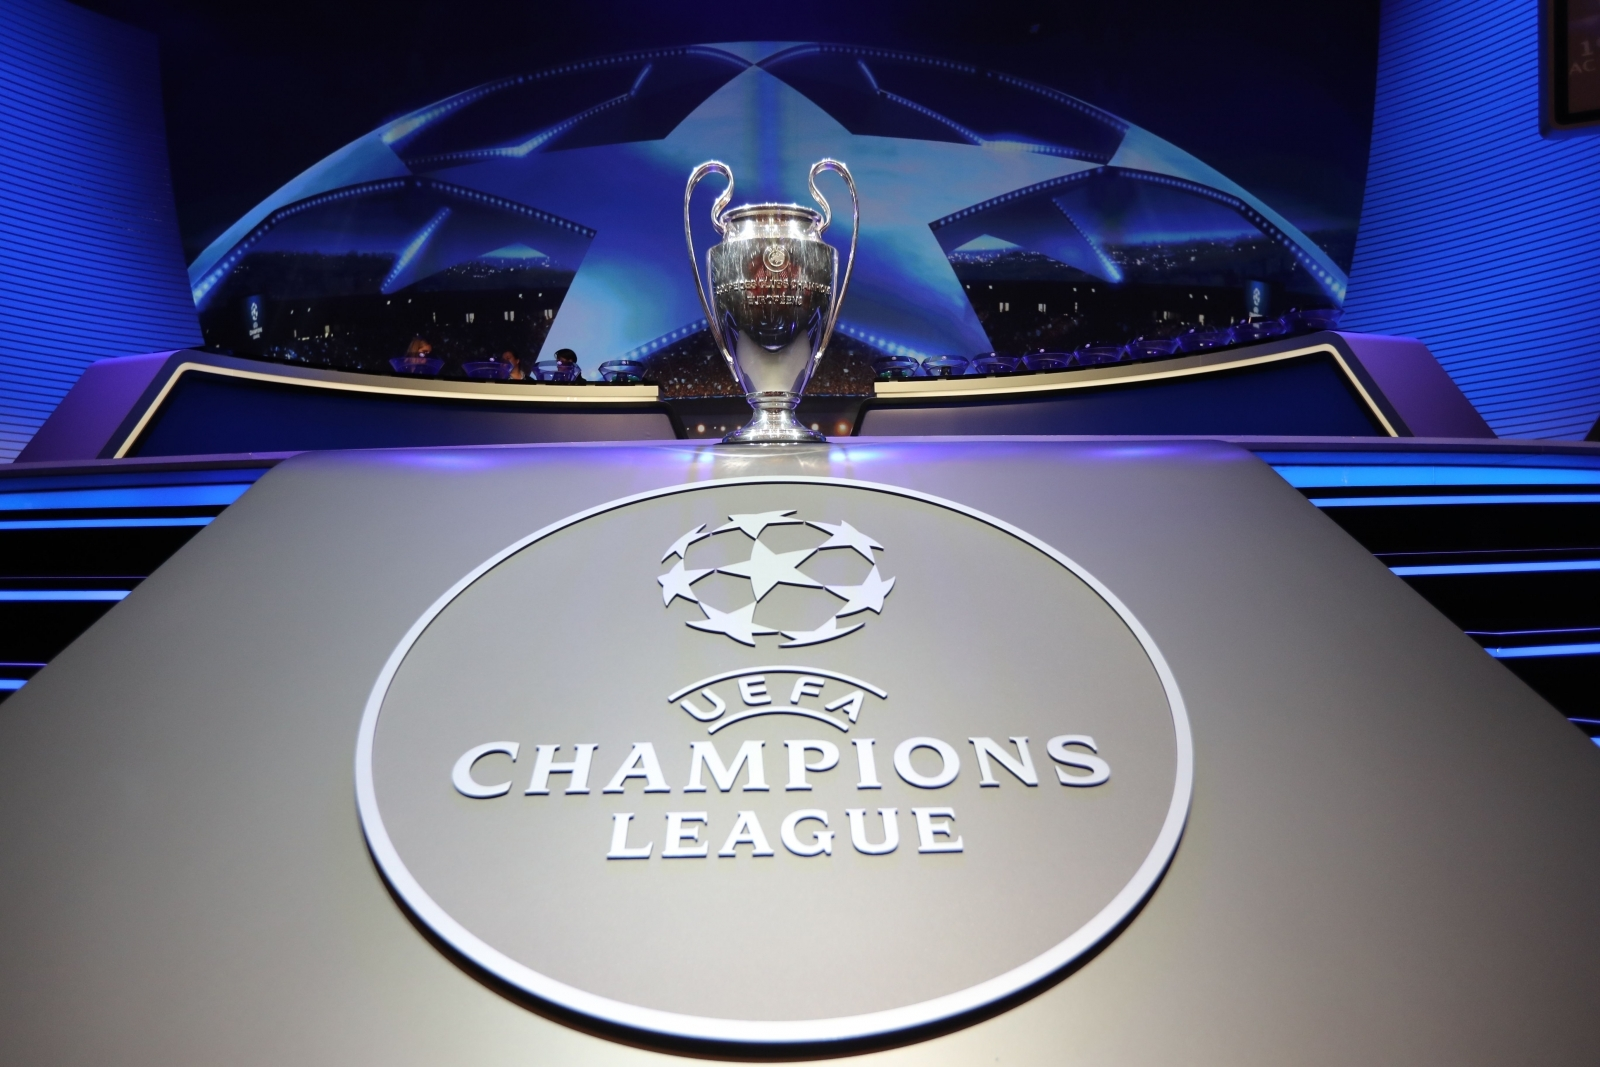 - Champions Uefa Chelsea last draw League handed 16